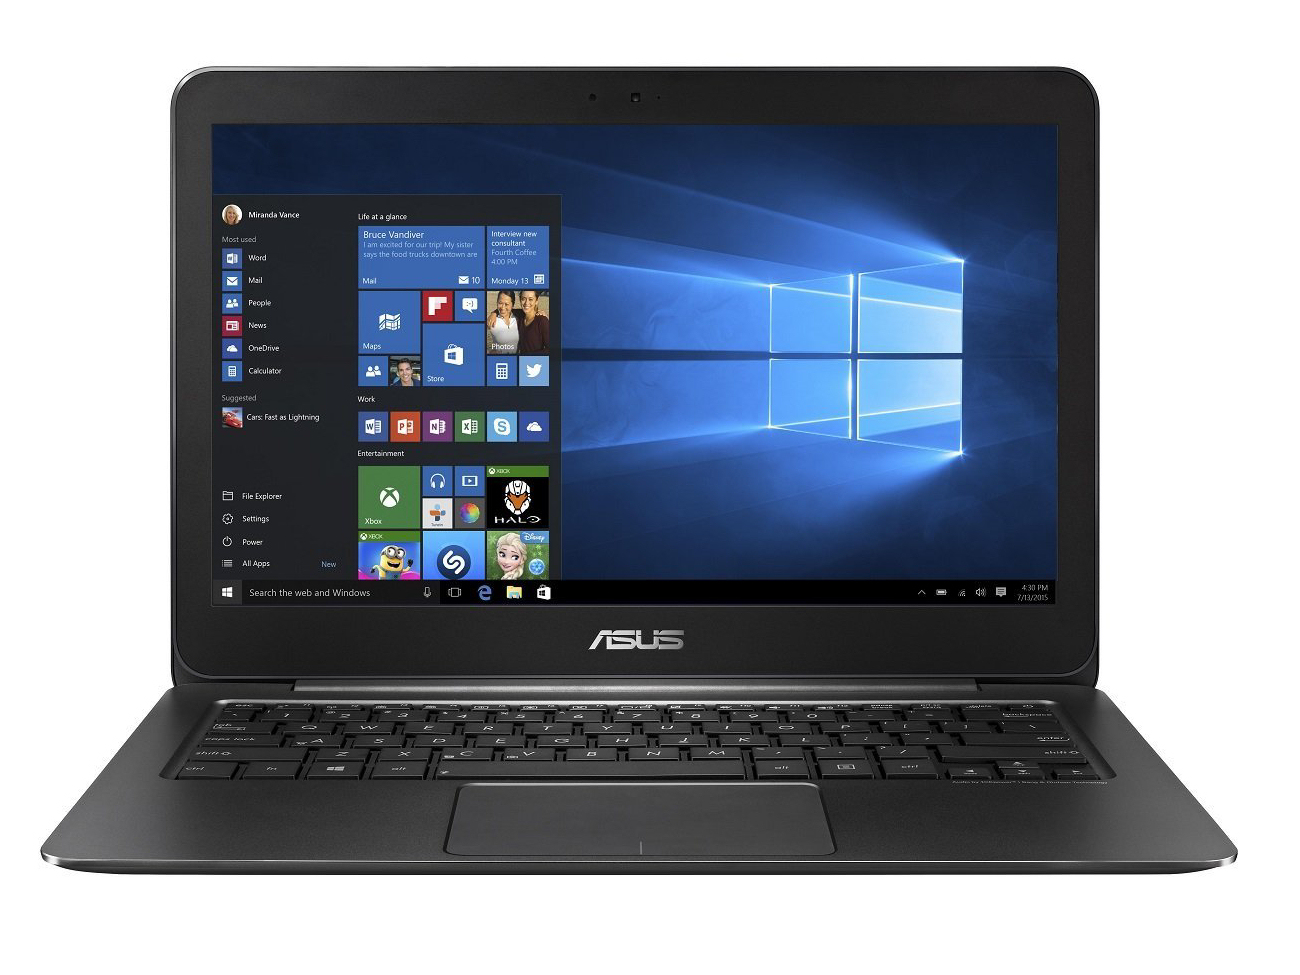 Asus Zenbook Ux305ca Fb055t Subnotebook Review With Input Level Control Http Wwwcasperelectronicscom Images In Test Model Courtesy Of Cyberportde